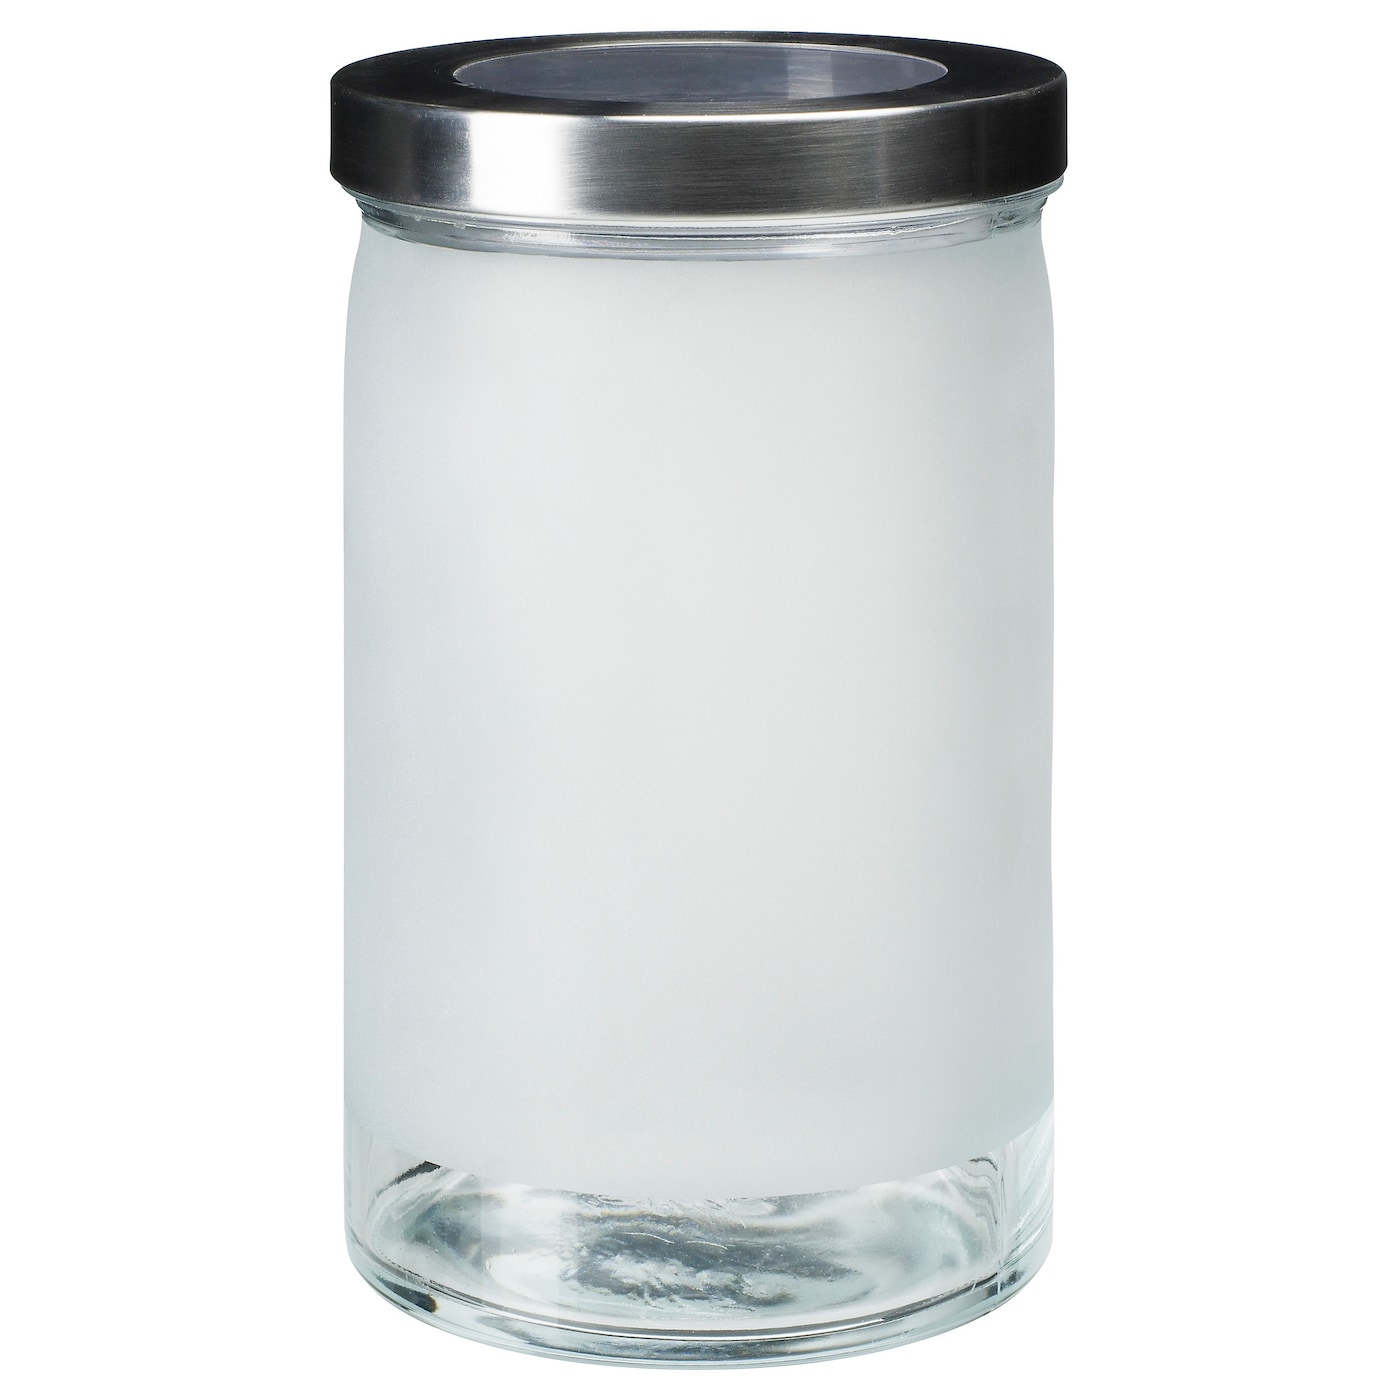 Droppar jar with lid frosted glass stainless steel 1 8 l - Ikea barattoli cucina ...